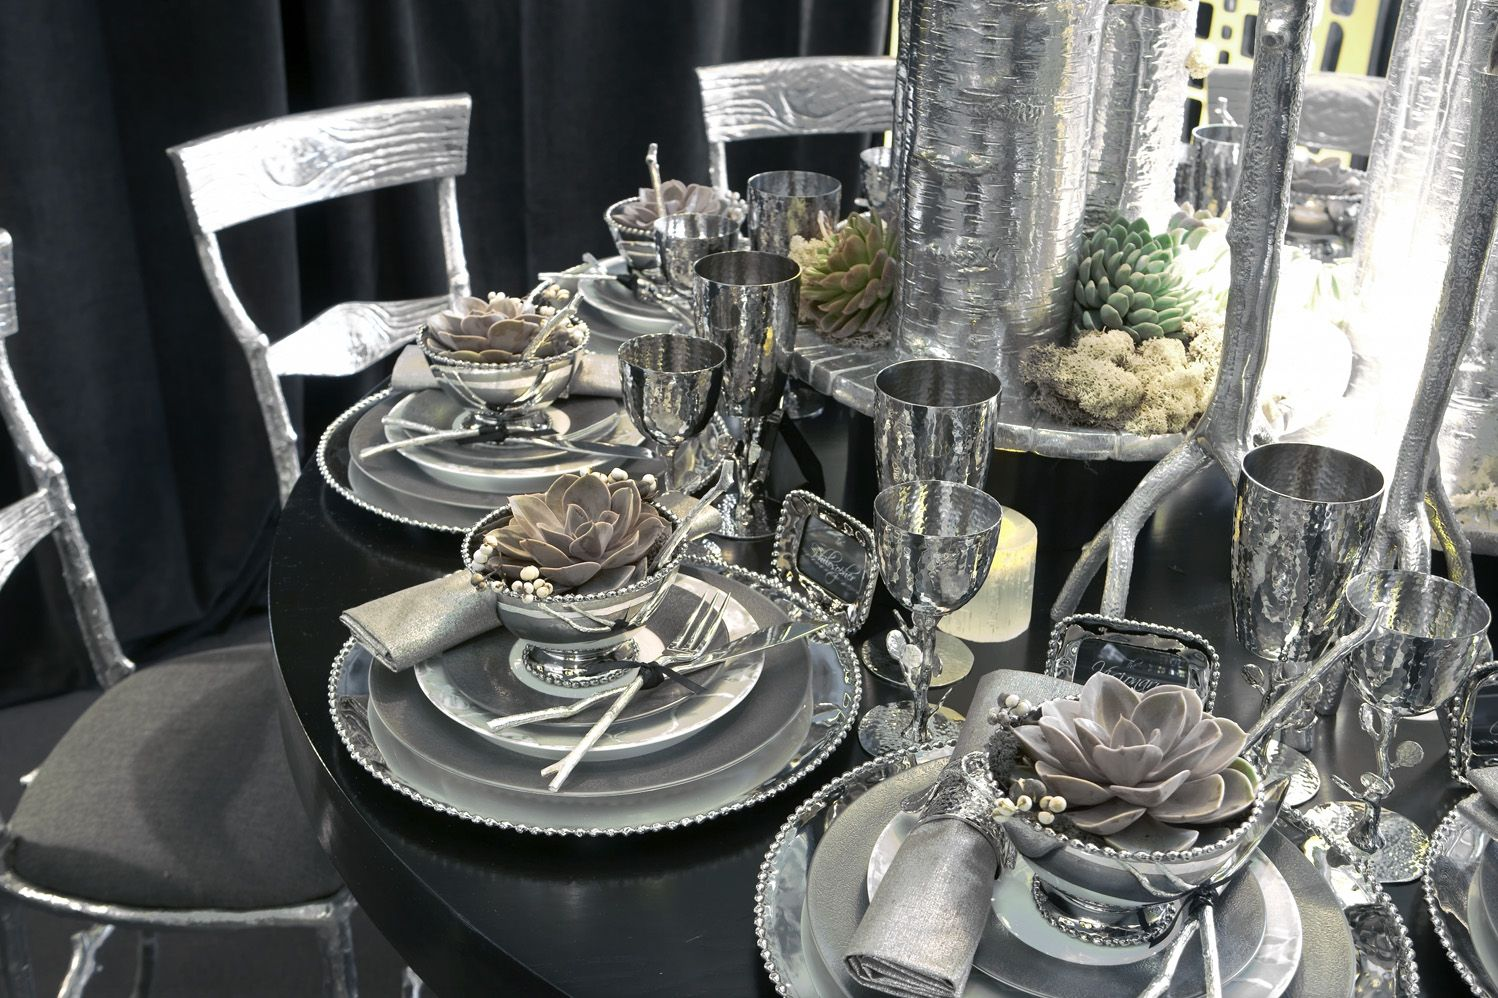 Michael Aram Table Designed For Geoffrey Zakarian At Diffa National National National Dinning By Design Event Elegant Home Decor Table Design Silverware Set